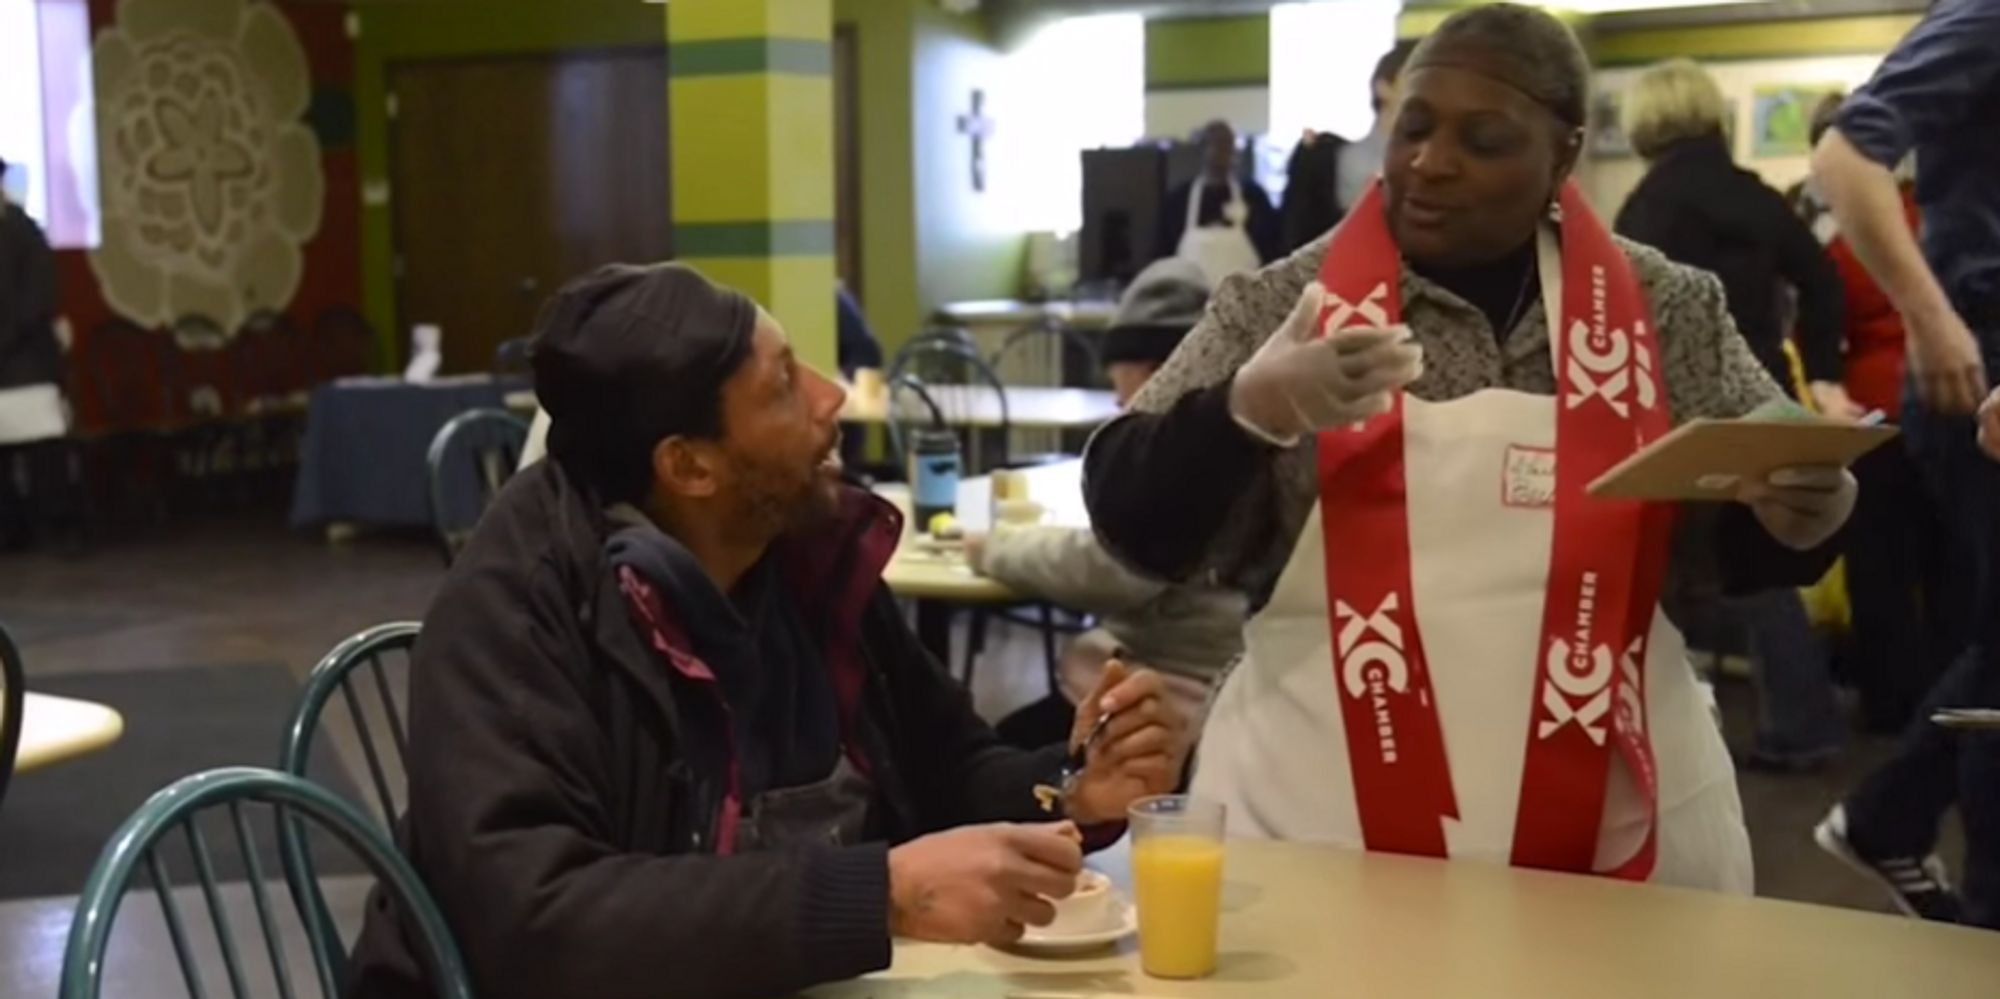 ordinary Kansas City Soup Kitchen Volunteer #9: Soup Kitchen Is Set Up Like A Restaurant So Homeless Can Dine With Dignity | The Huffington Post